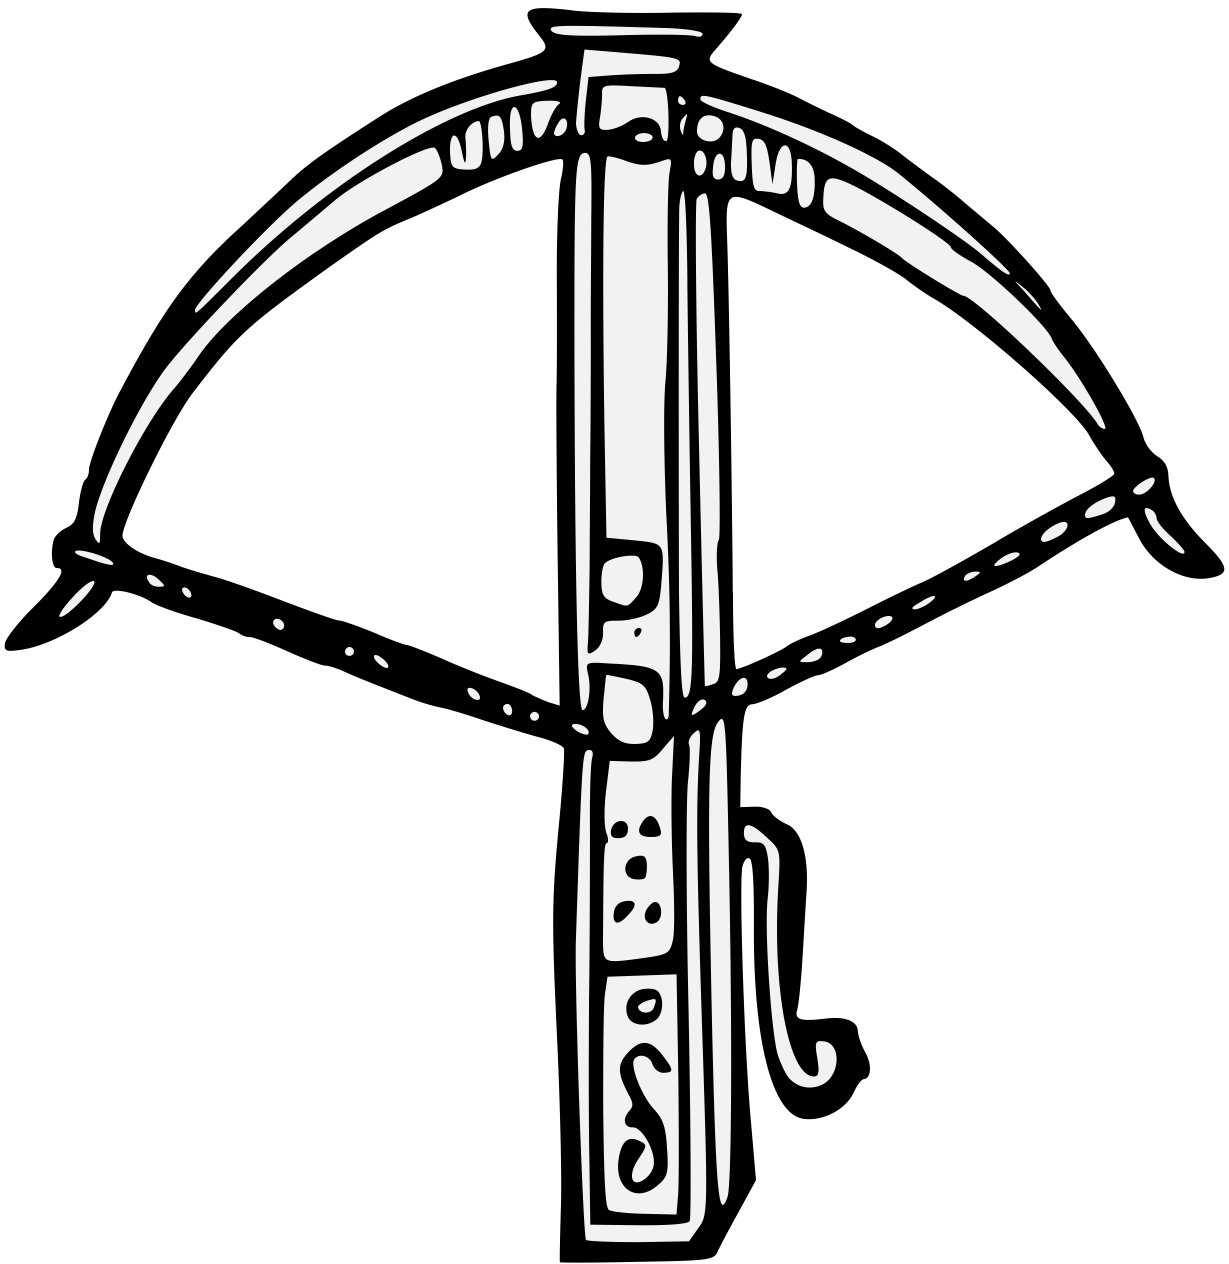 Cross bow clipart svg royalty free Crossbow Drawing at GetDrawings.com | Free for personal use Crossbow ... svg royalty free